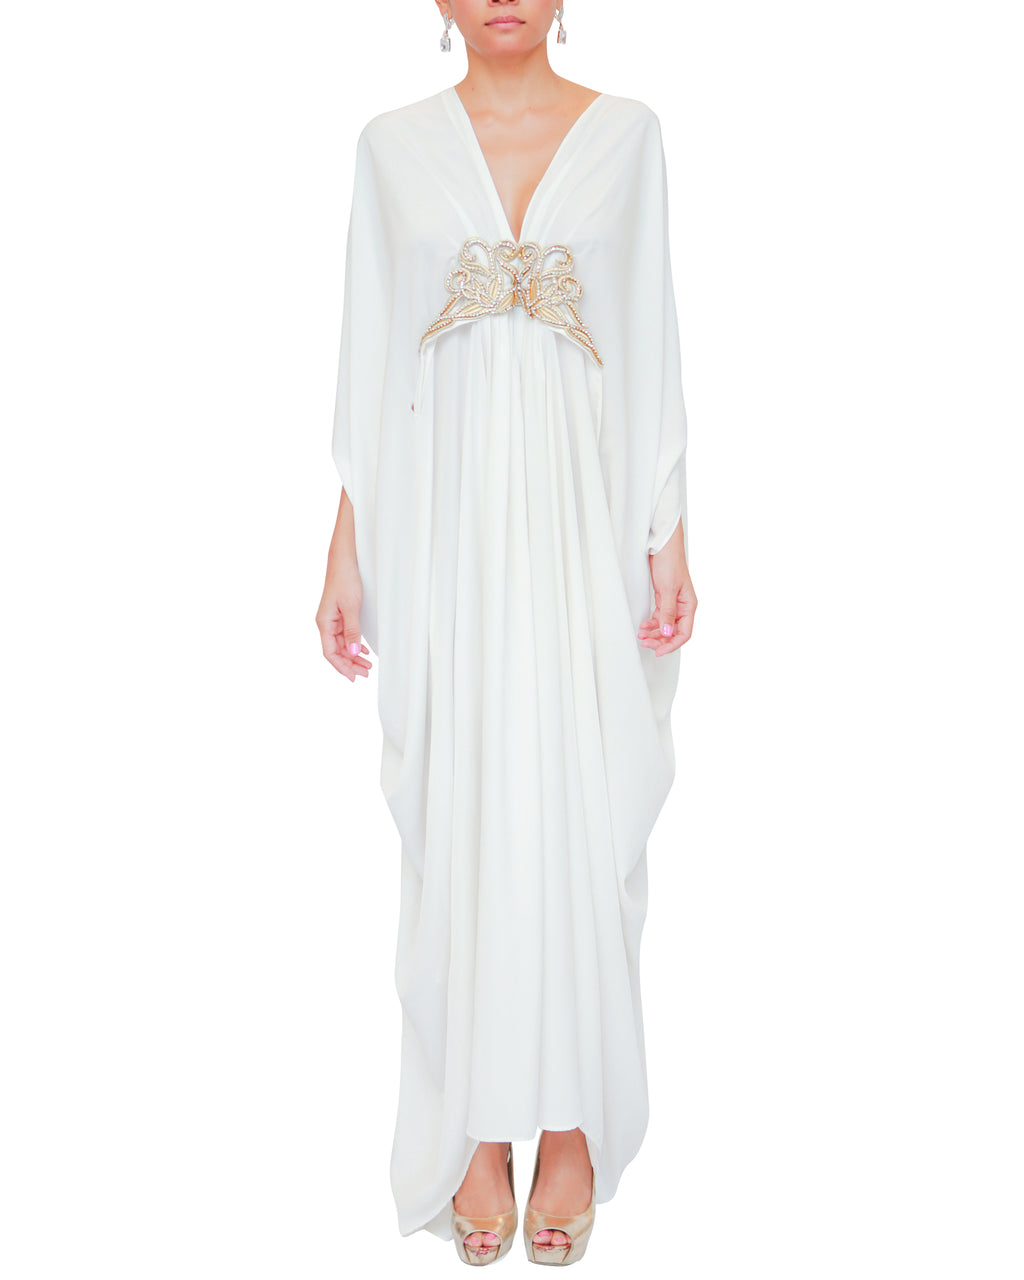 White Kaftan Gold Embellishment Dress